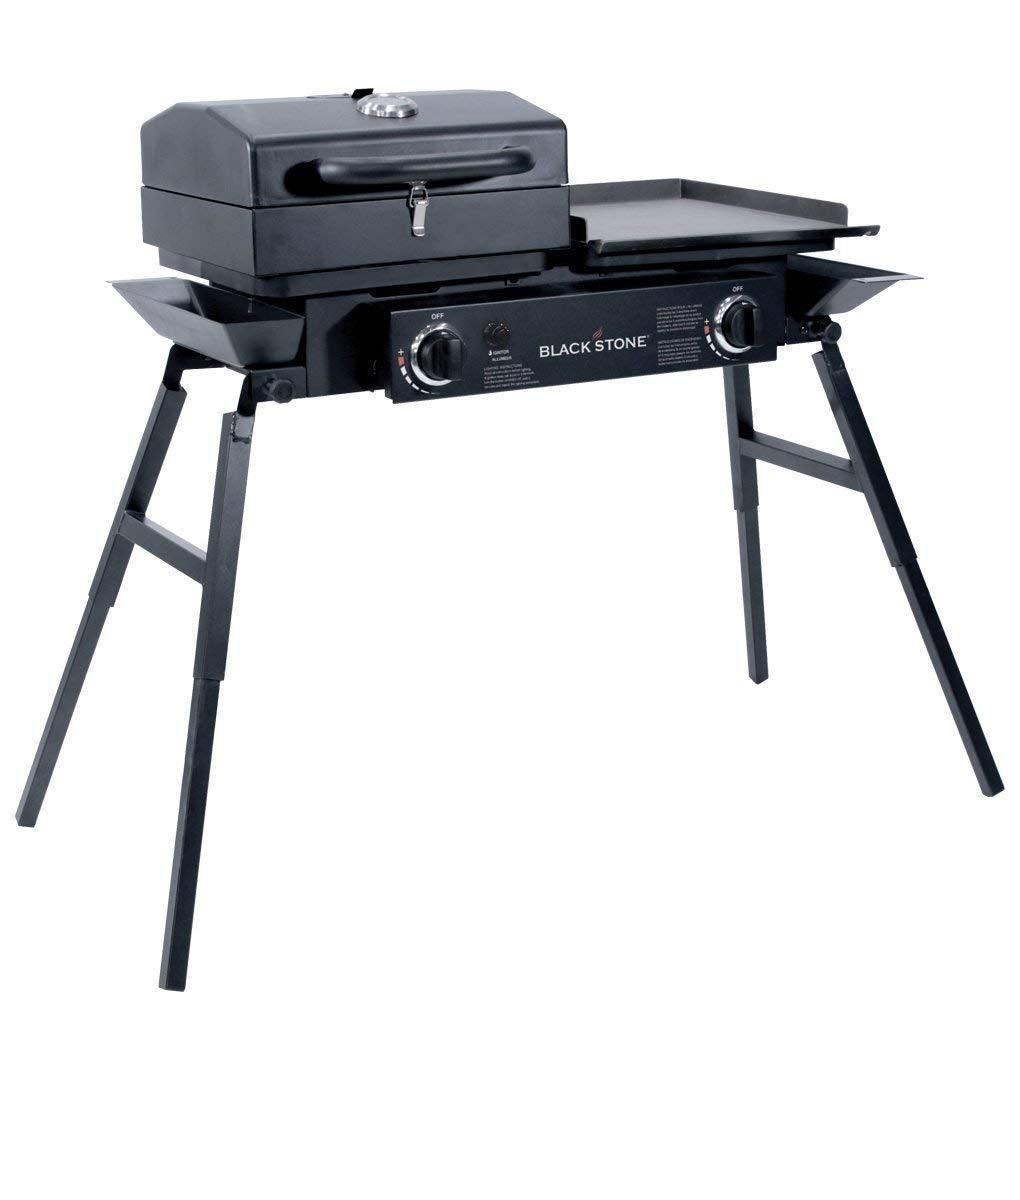 "Renewed Barbecue Box Portable Gas Grill and Griddle Combo Blackstone Grills Tailgater Tailgating and More Fishing Two Open Burners /"" Griddle Top Camping Stove Great for Hunting Adjustable Legs"